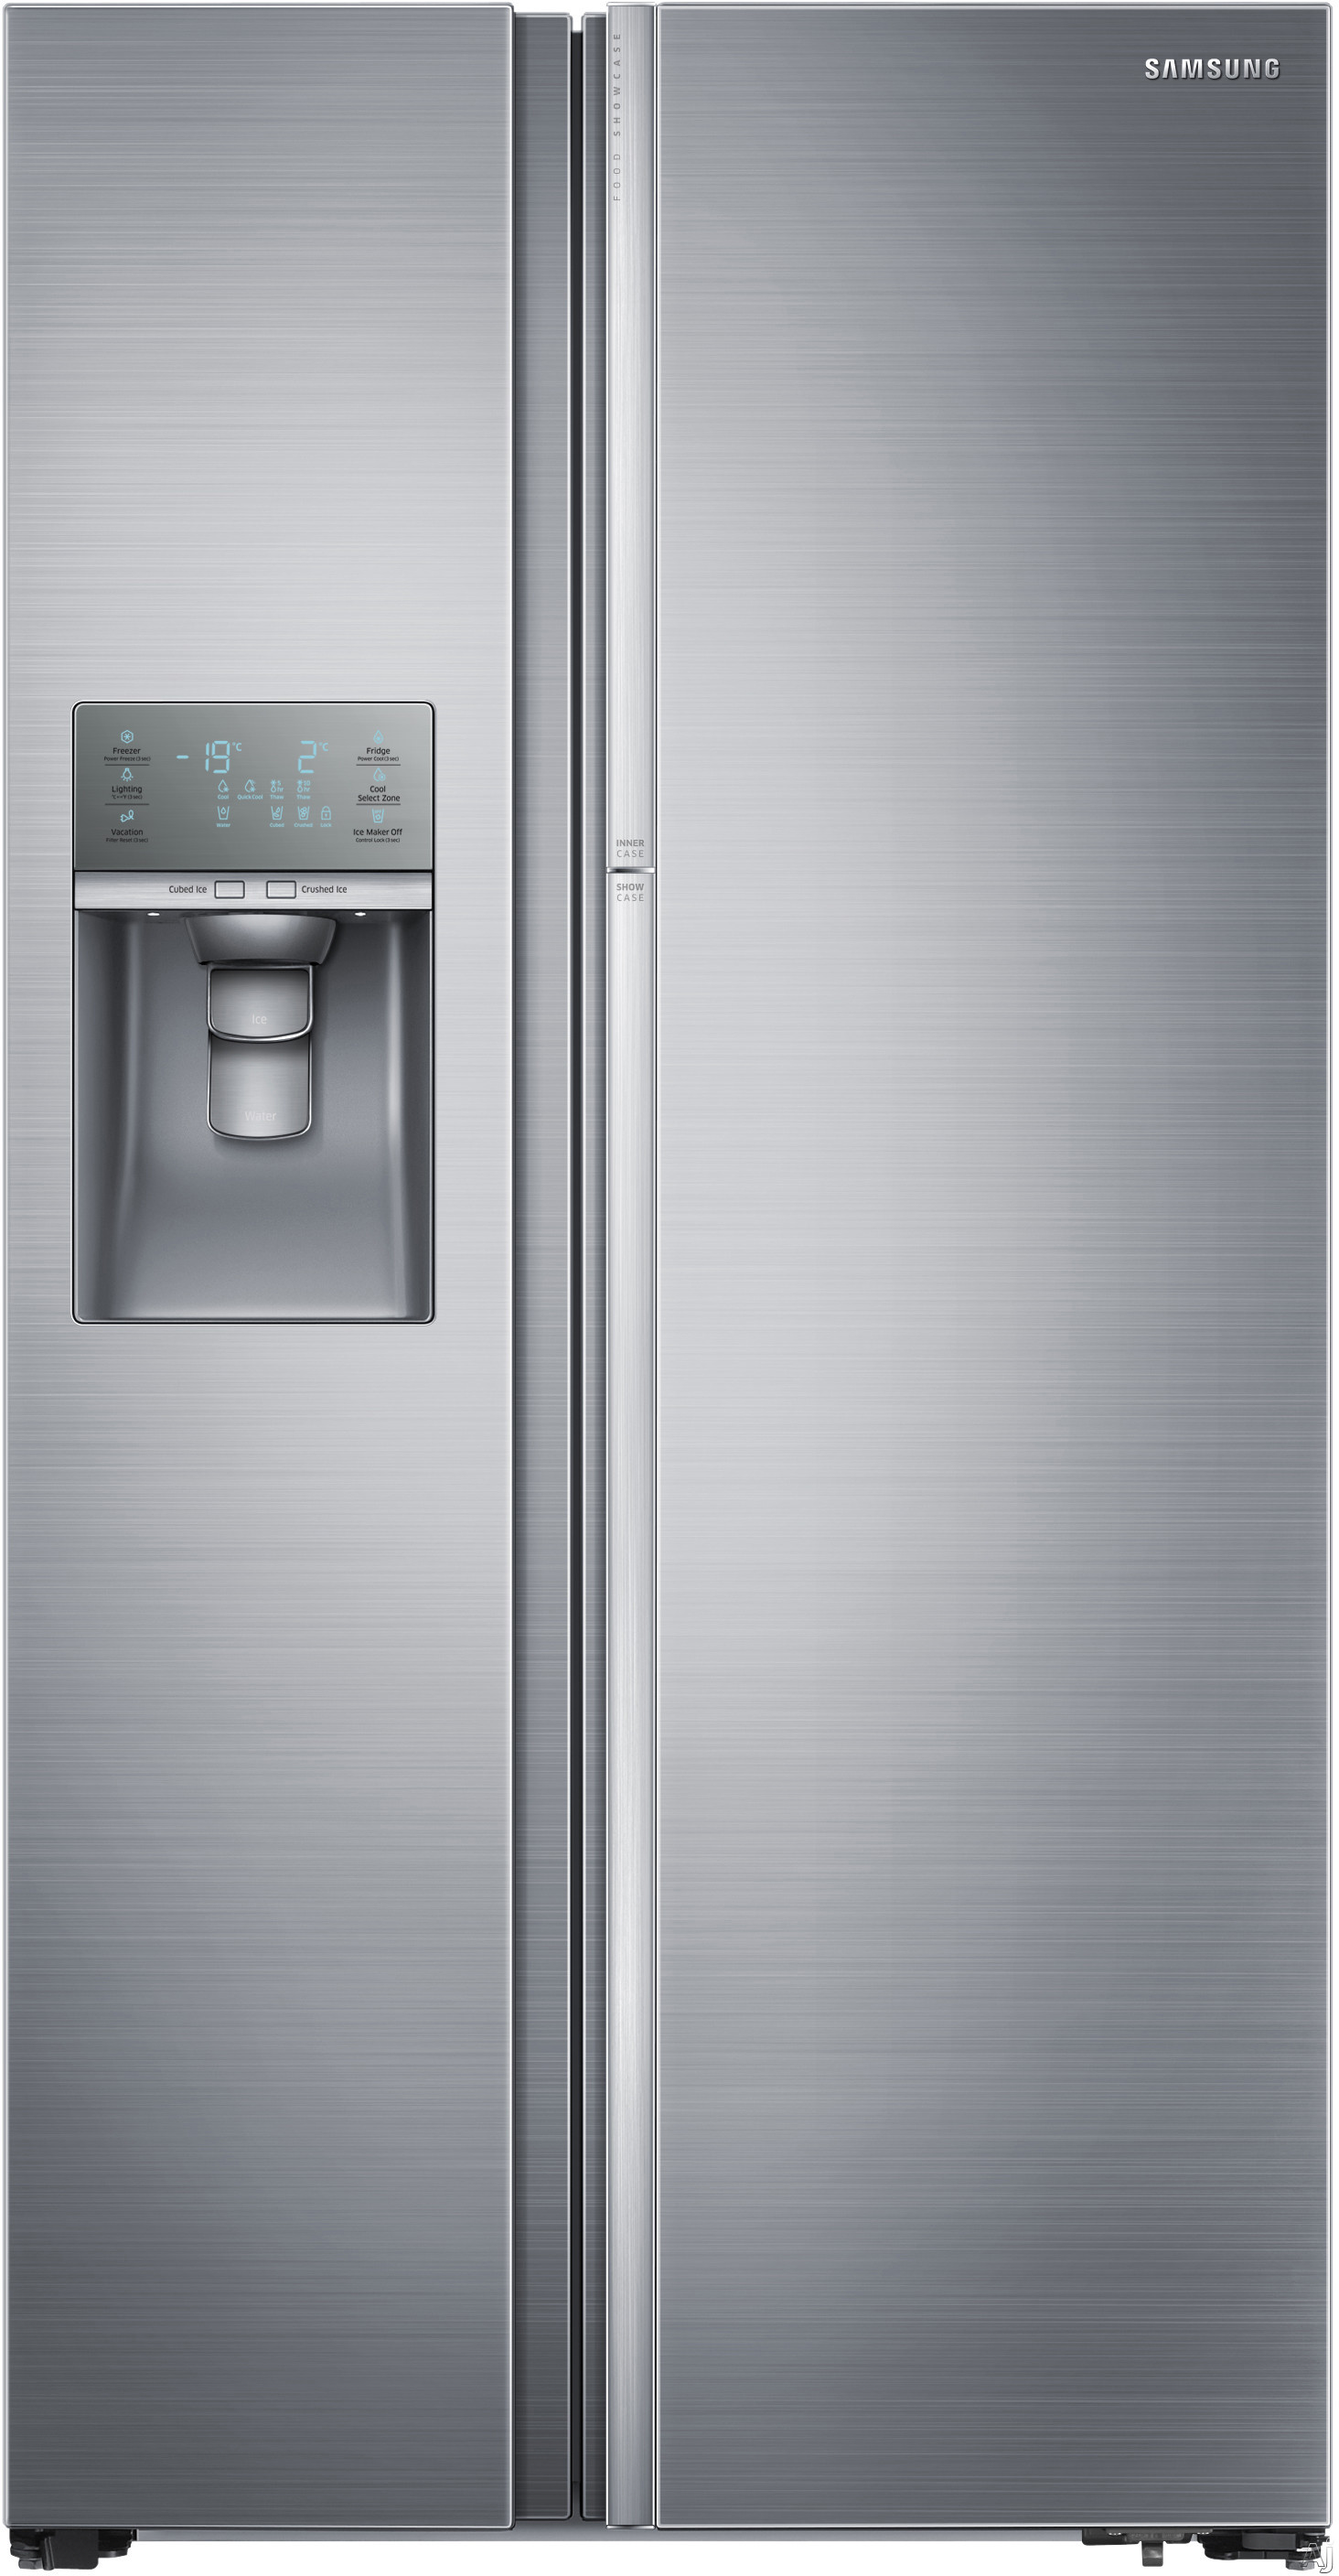 Samsung Rh29h9000sr 28 5 Cu Ft Side By Side Refrigerator